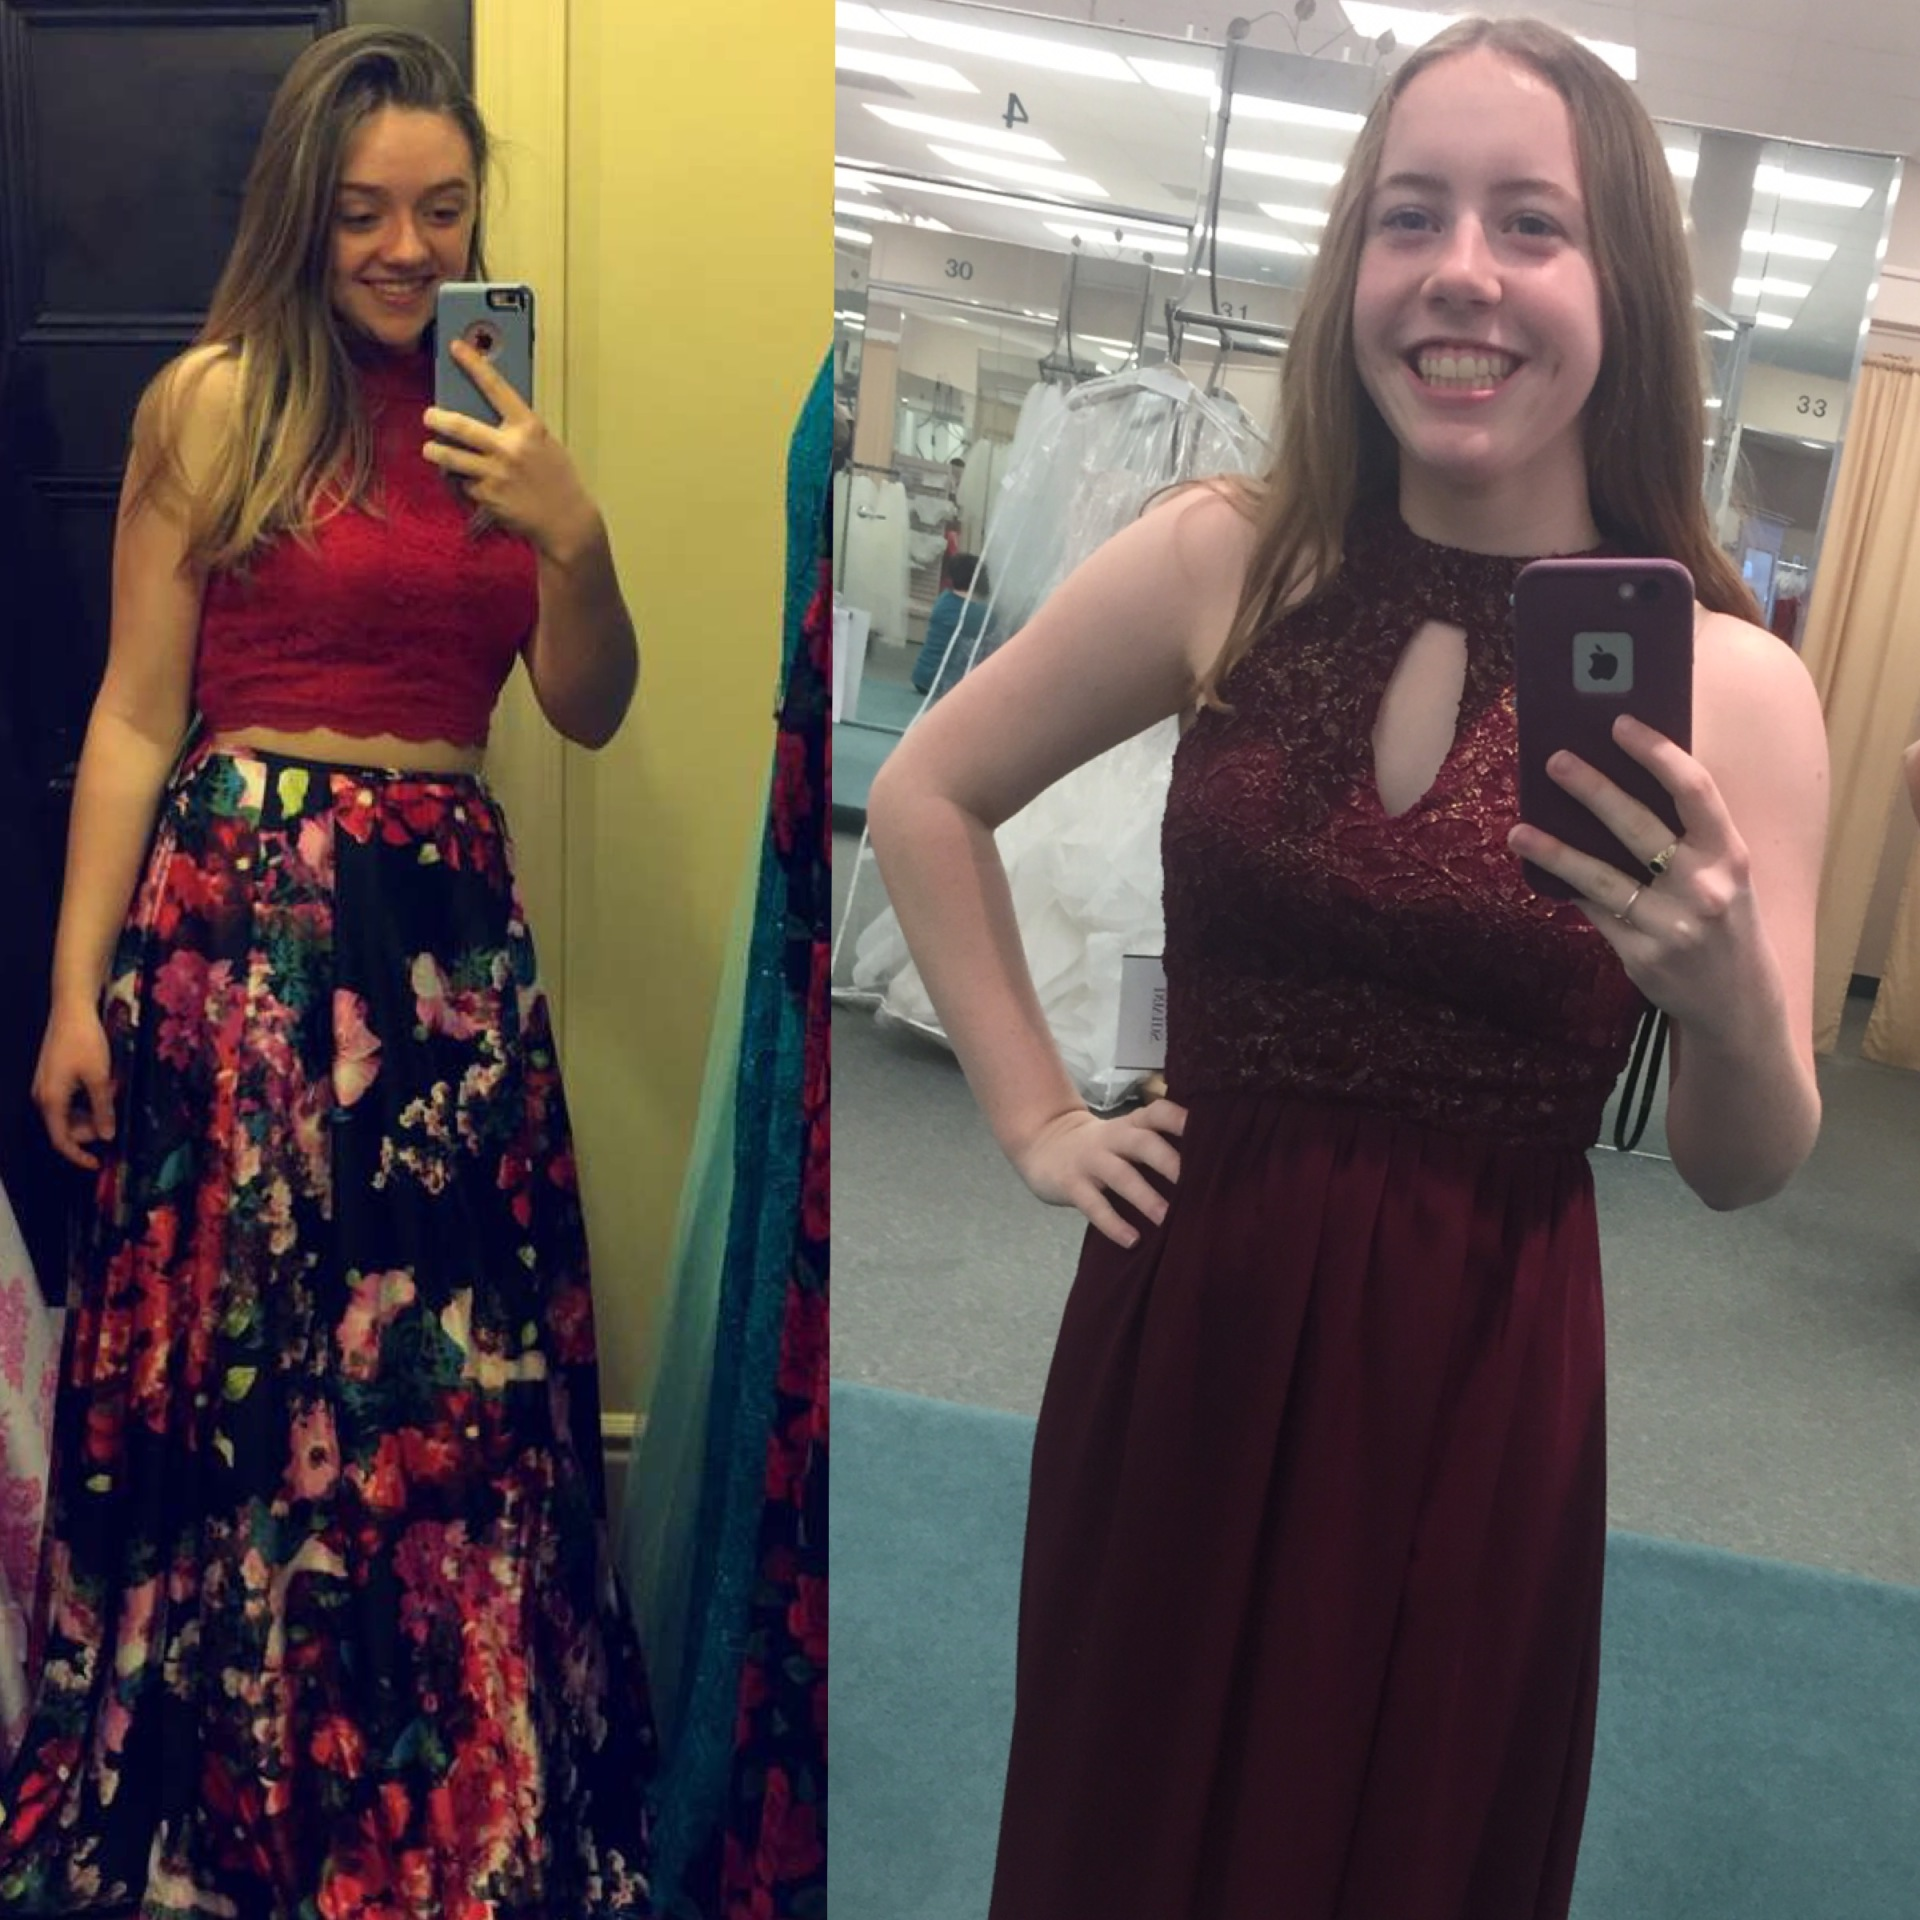 Jenna Vain (left) shows off her simple, one-piece red dress while Rachel Truex (right) is sporting h